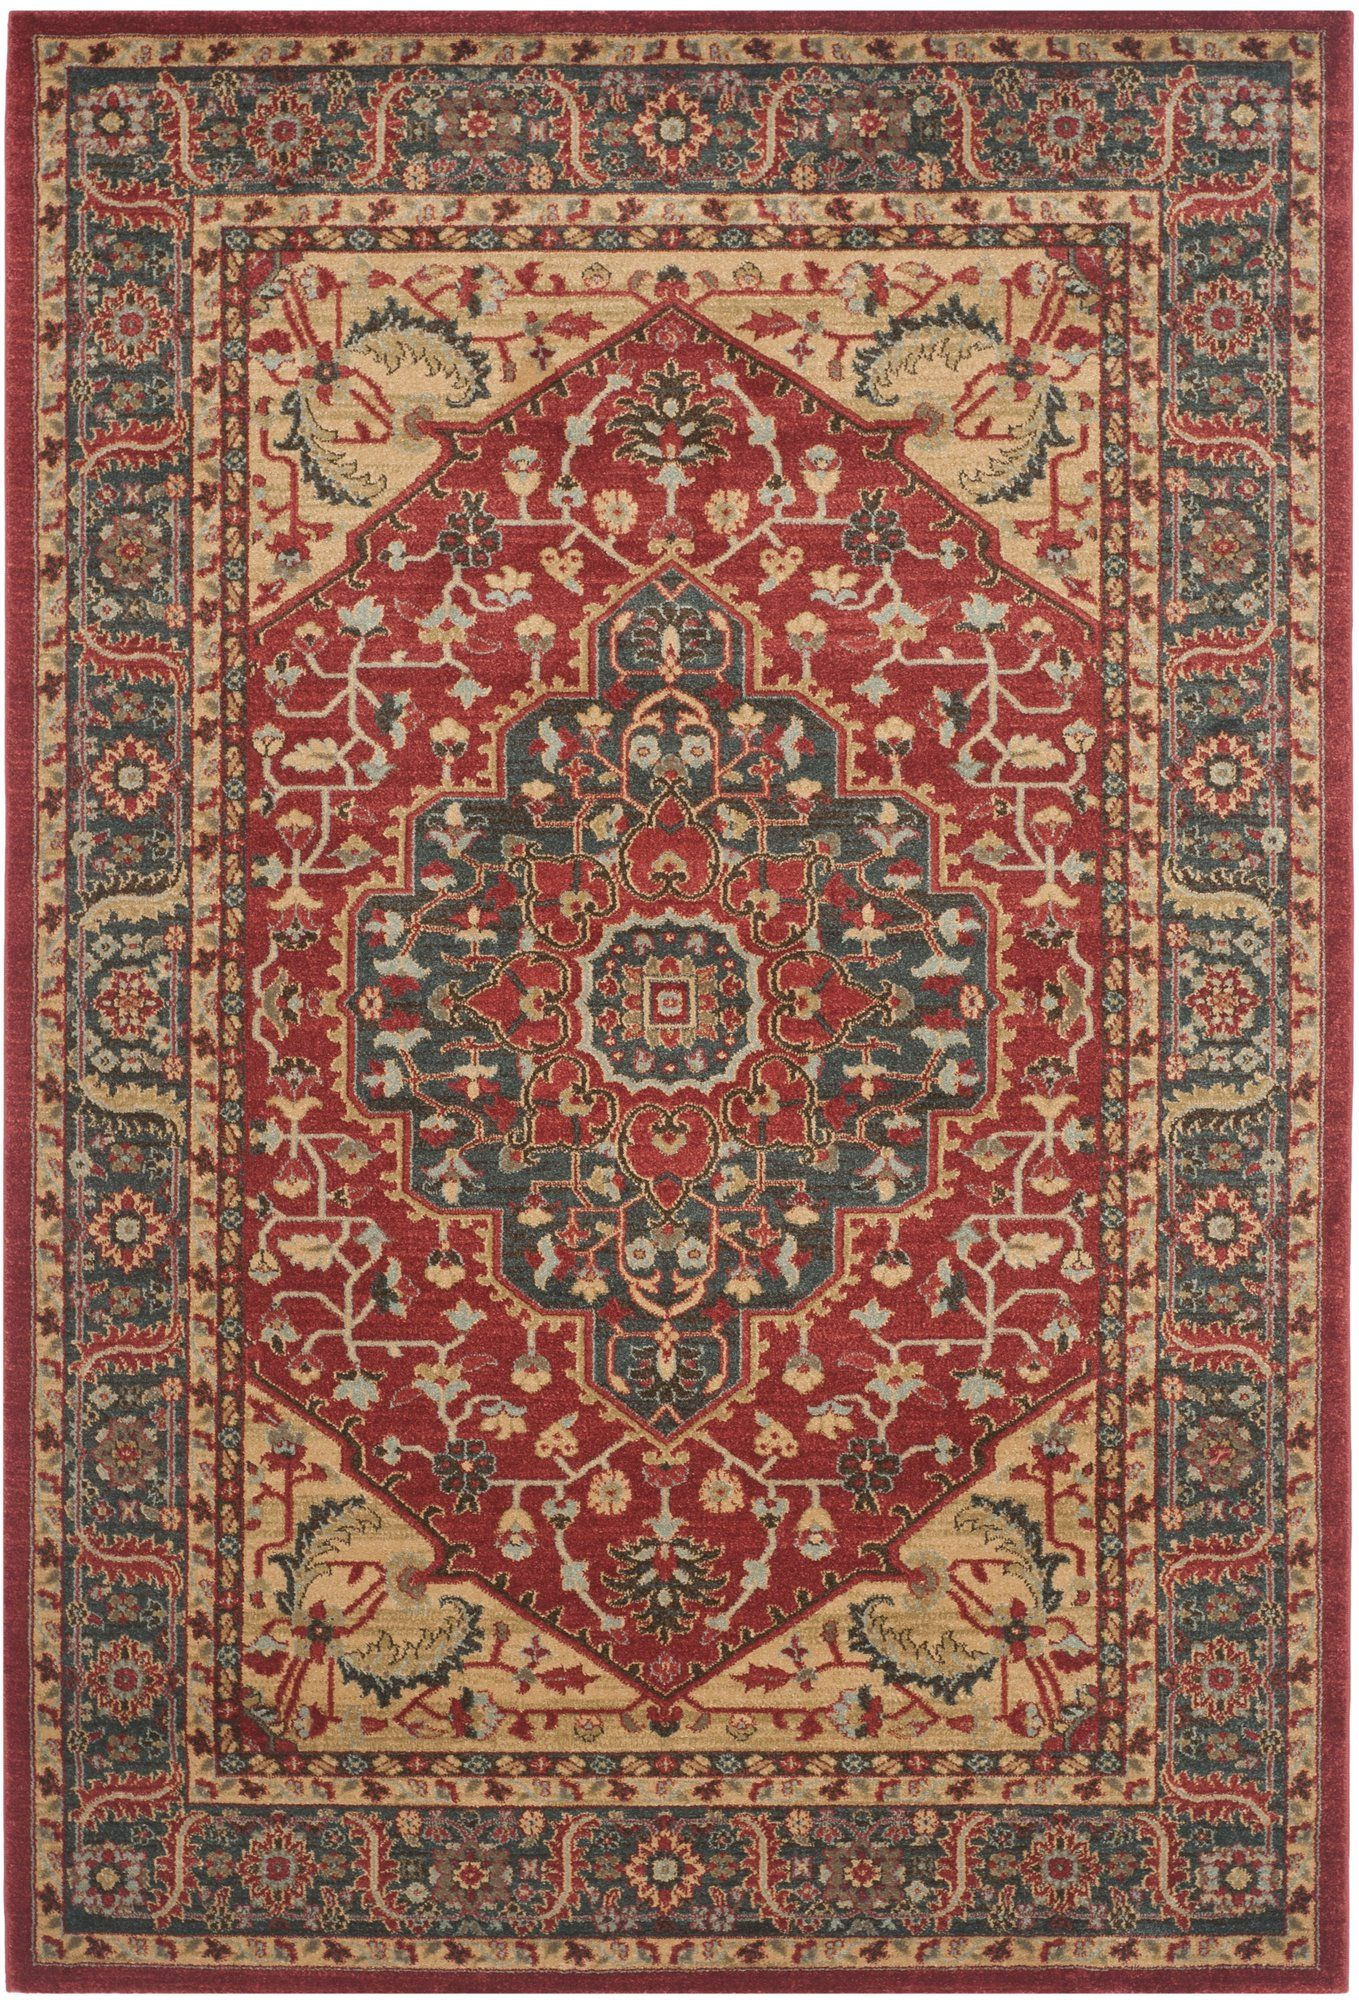 Denton Navy/Red Area Rug | Products | Pinterest | Products